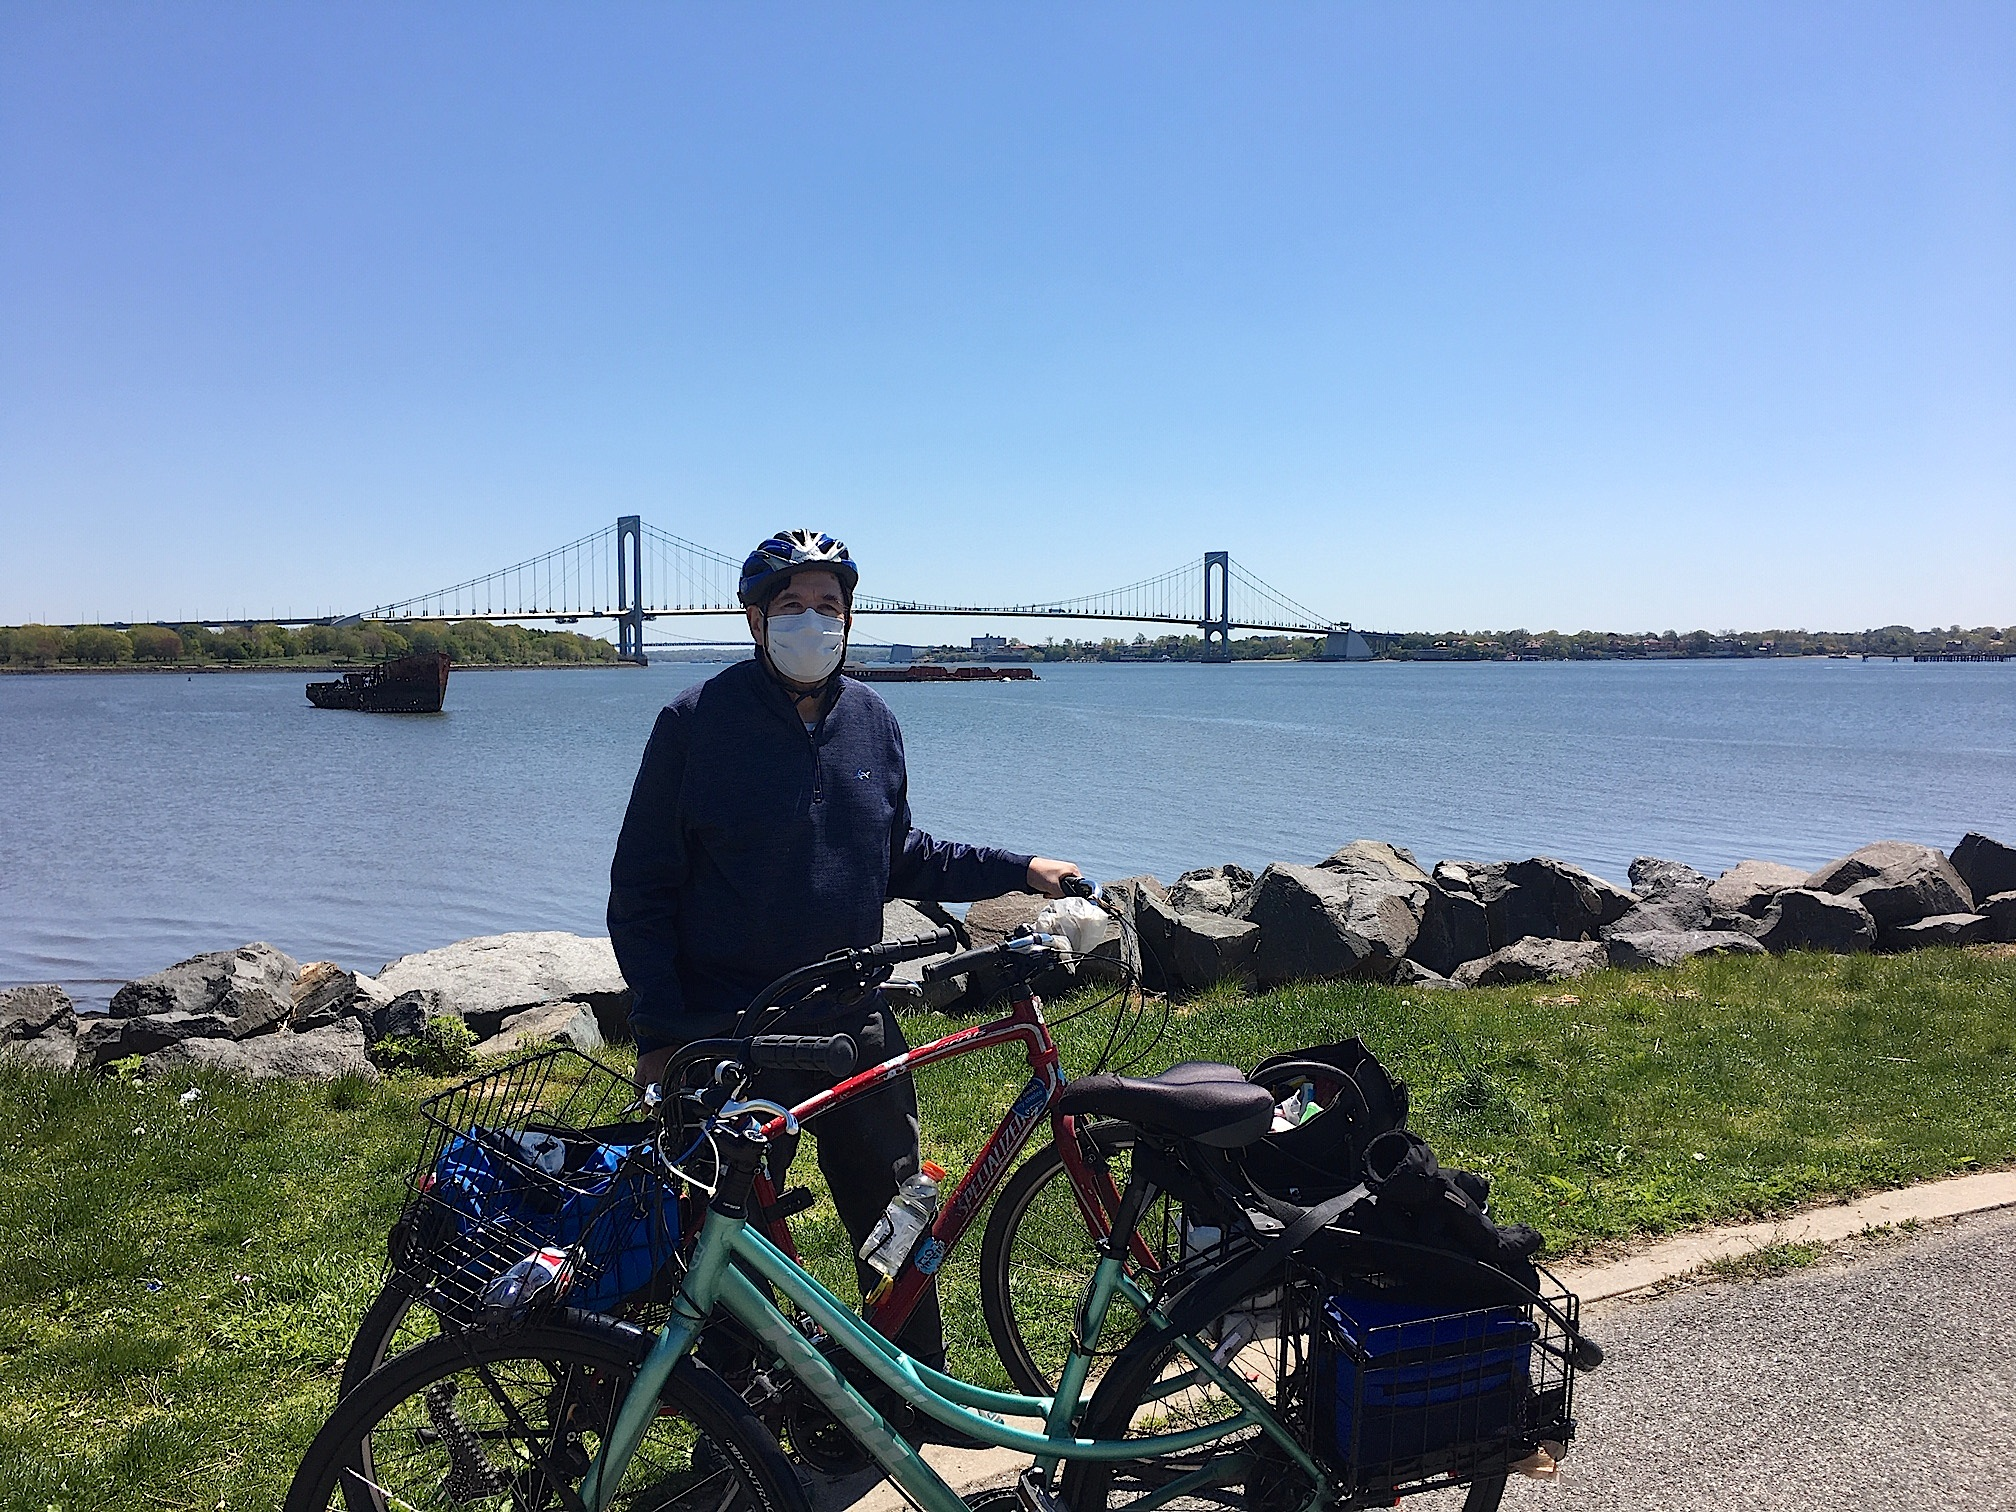 John in front of the Whitestone Bridge